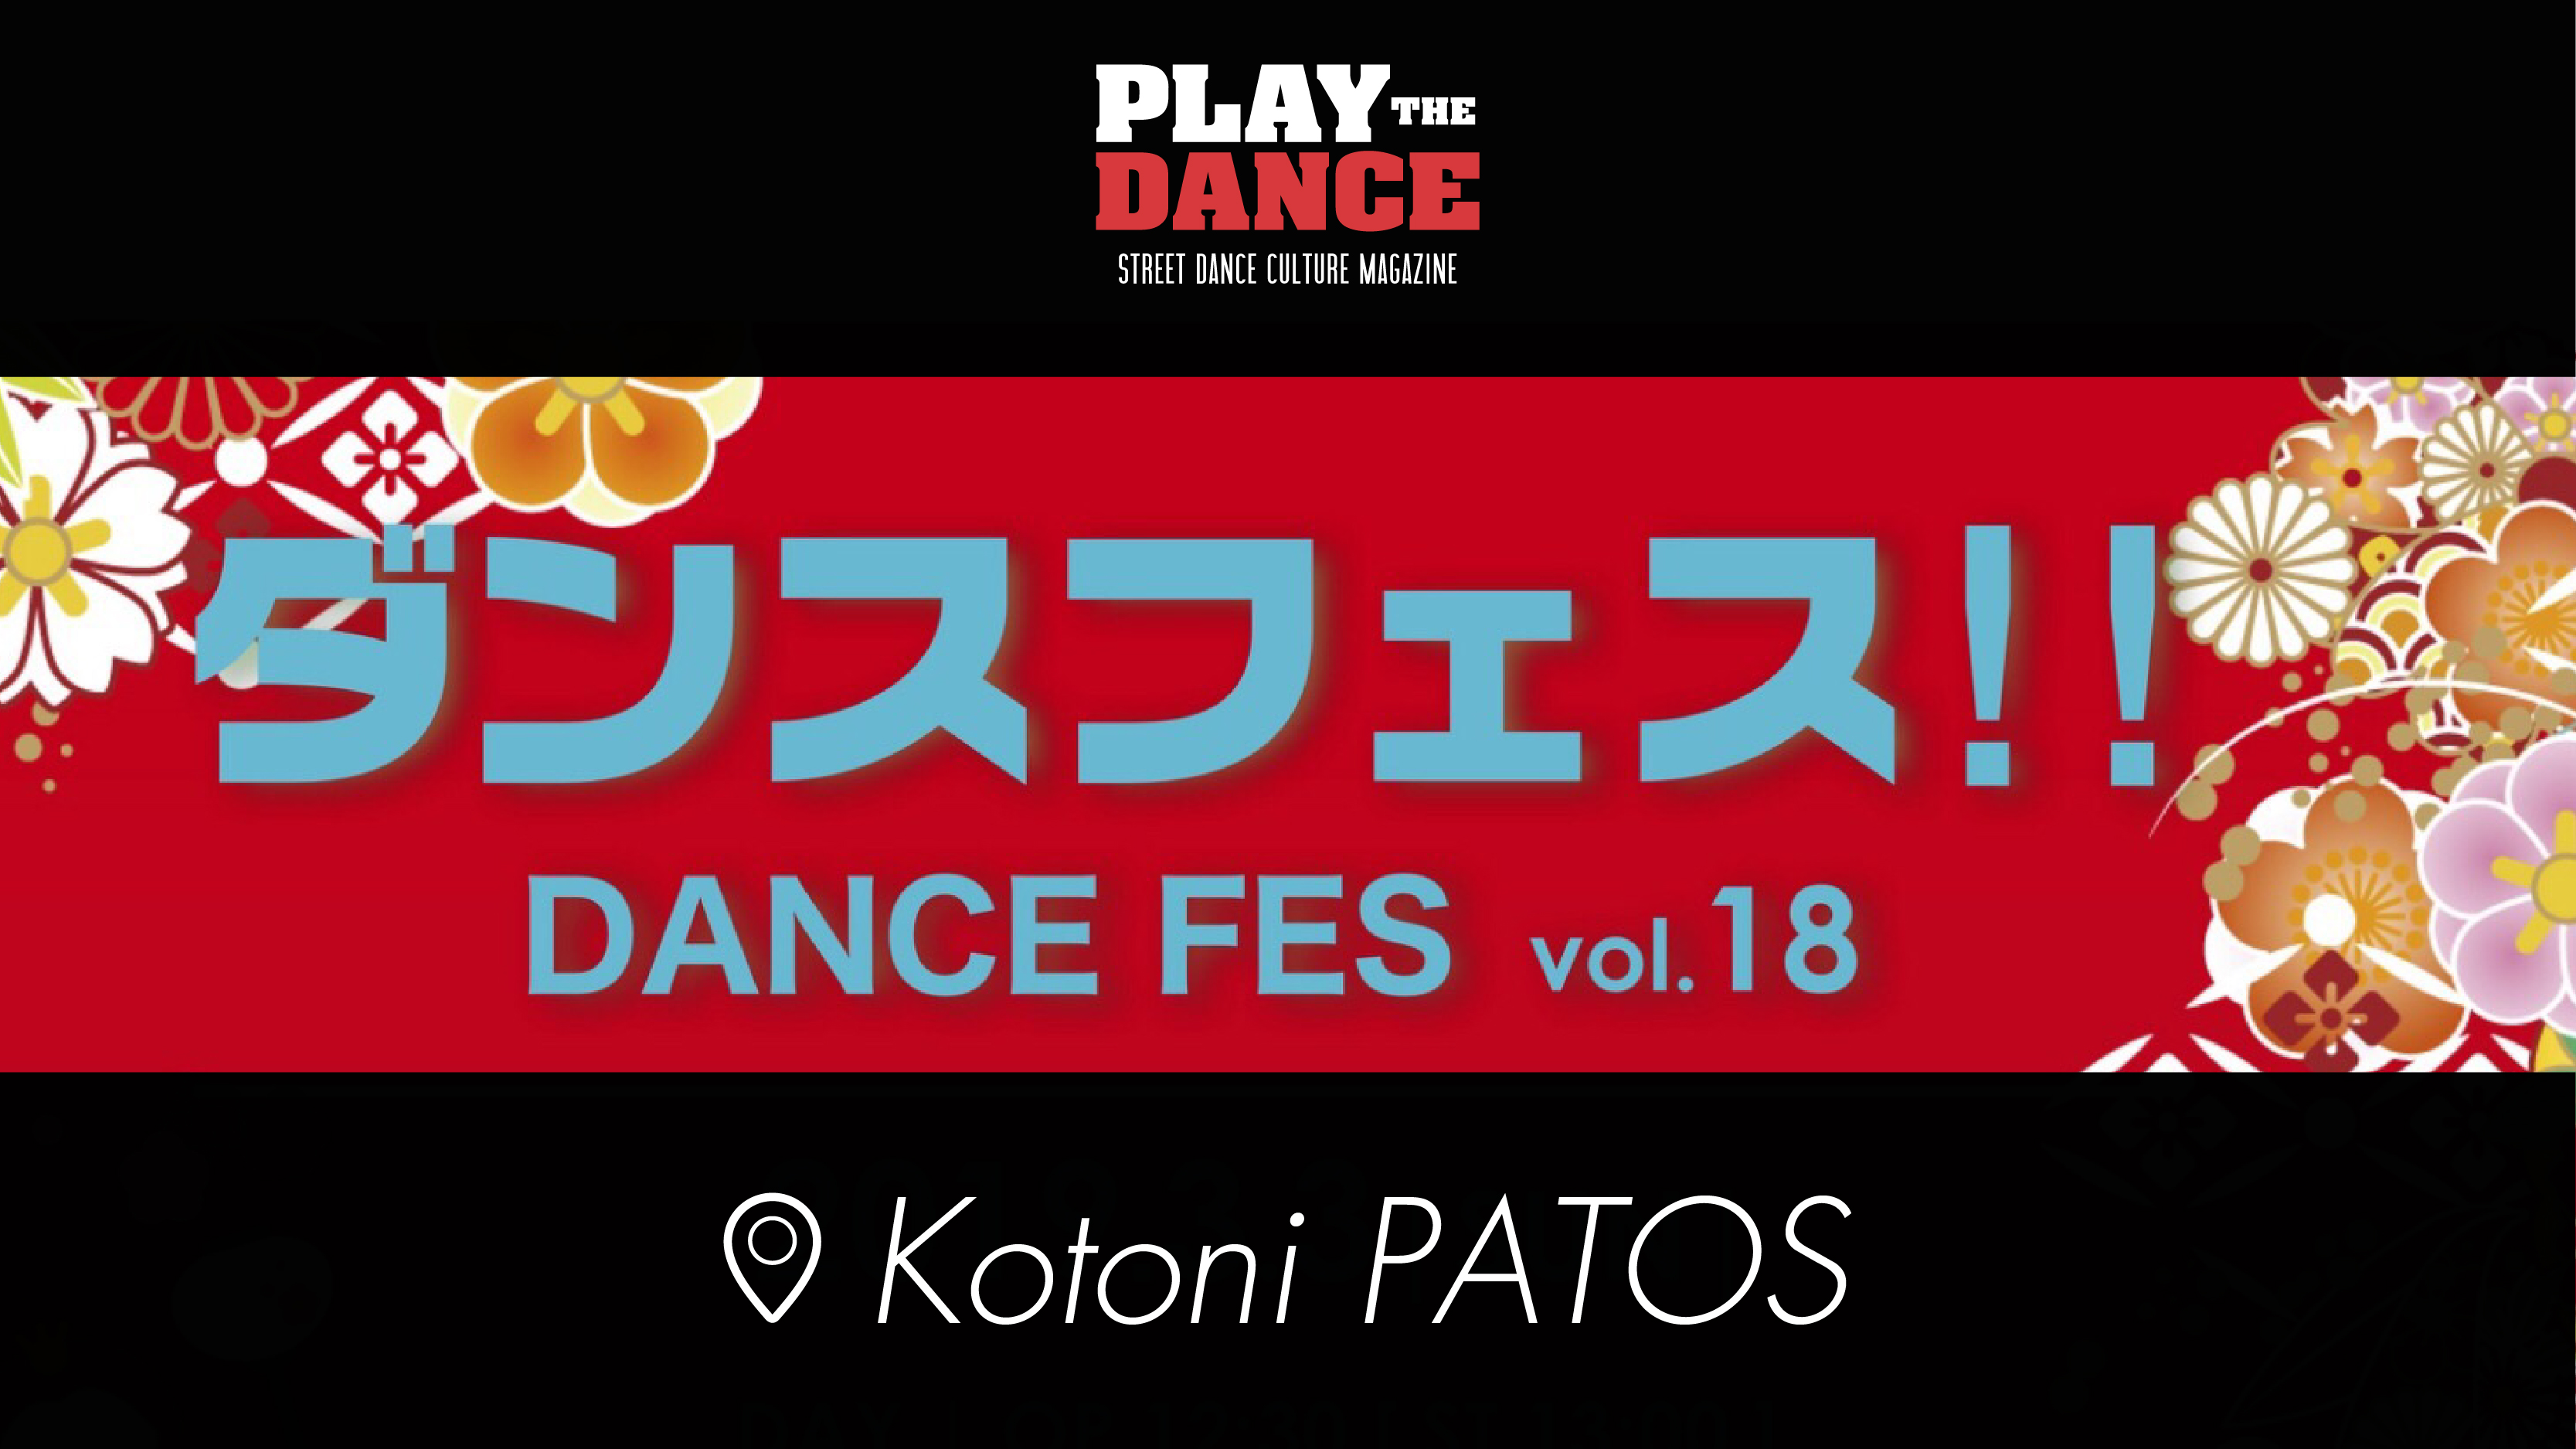 DANCE FES!! vol.18